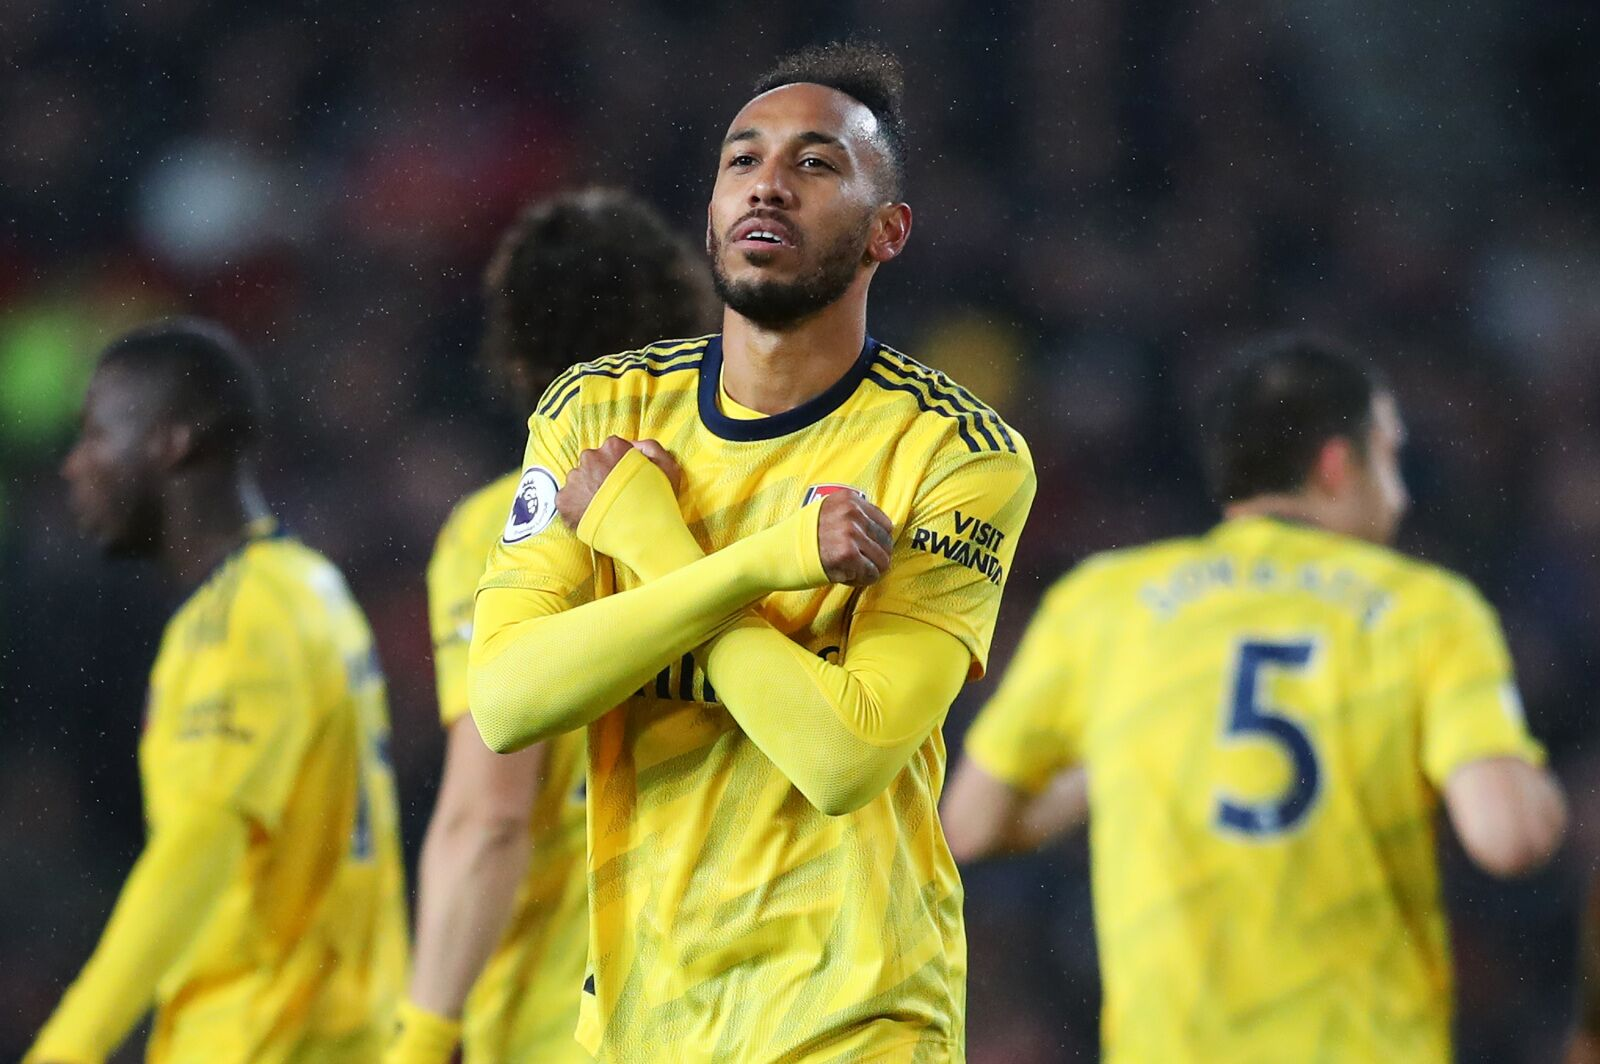 Arsenal: Pierre-Emerick Aubameyang going above and beyond